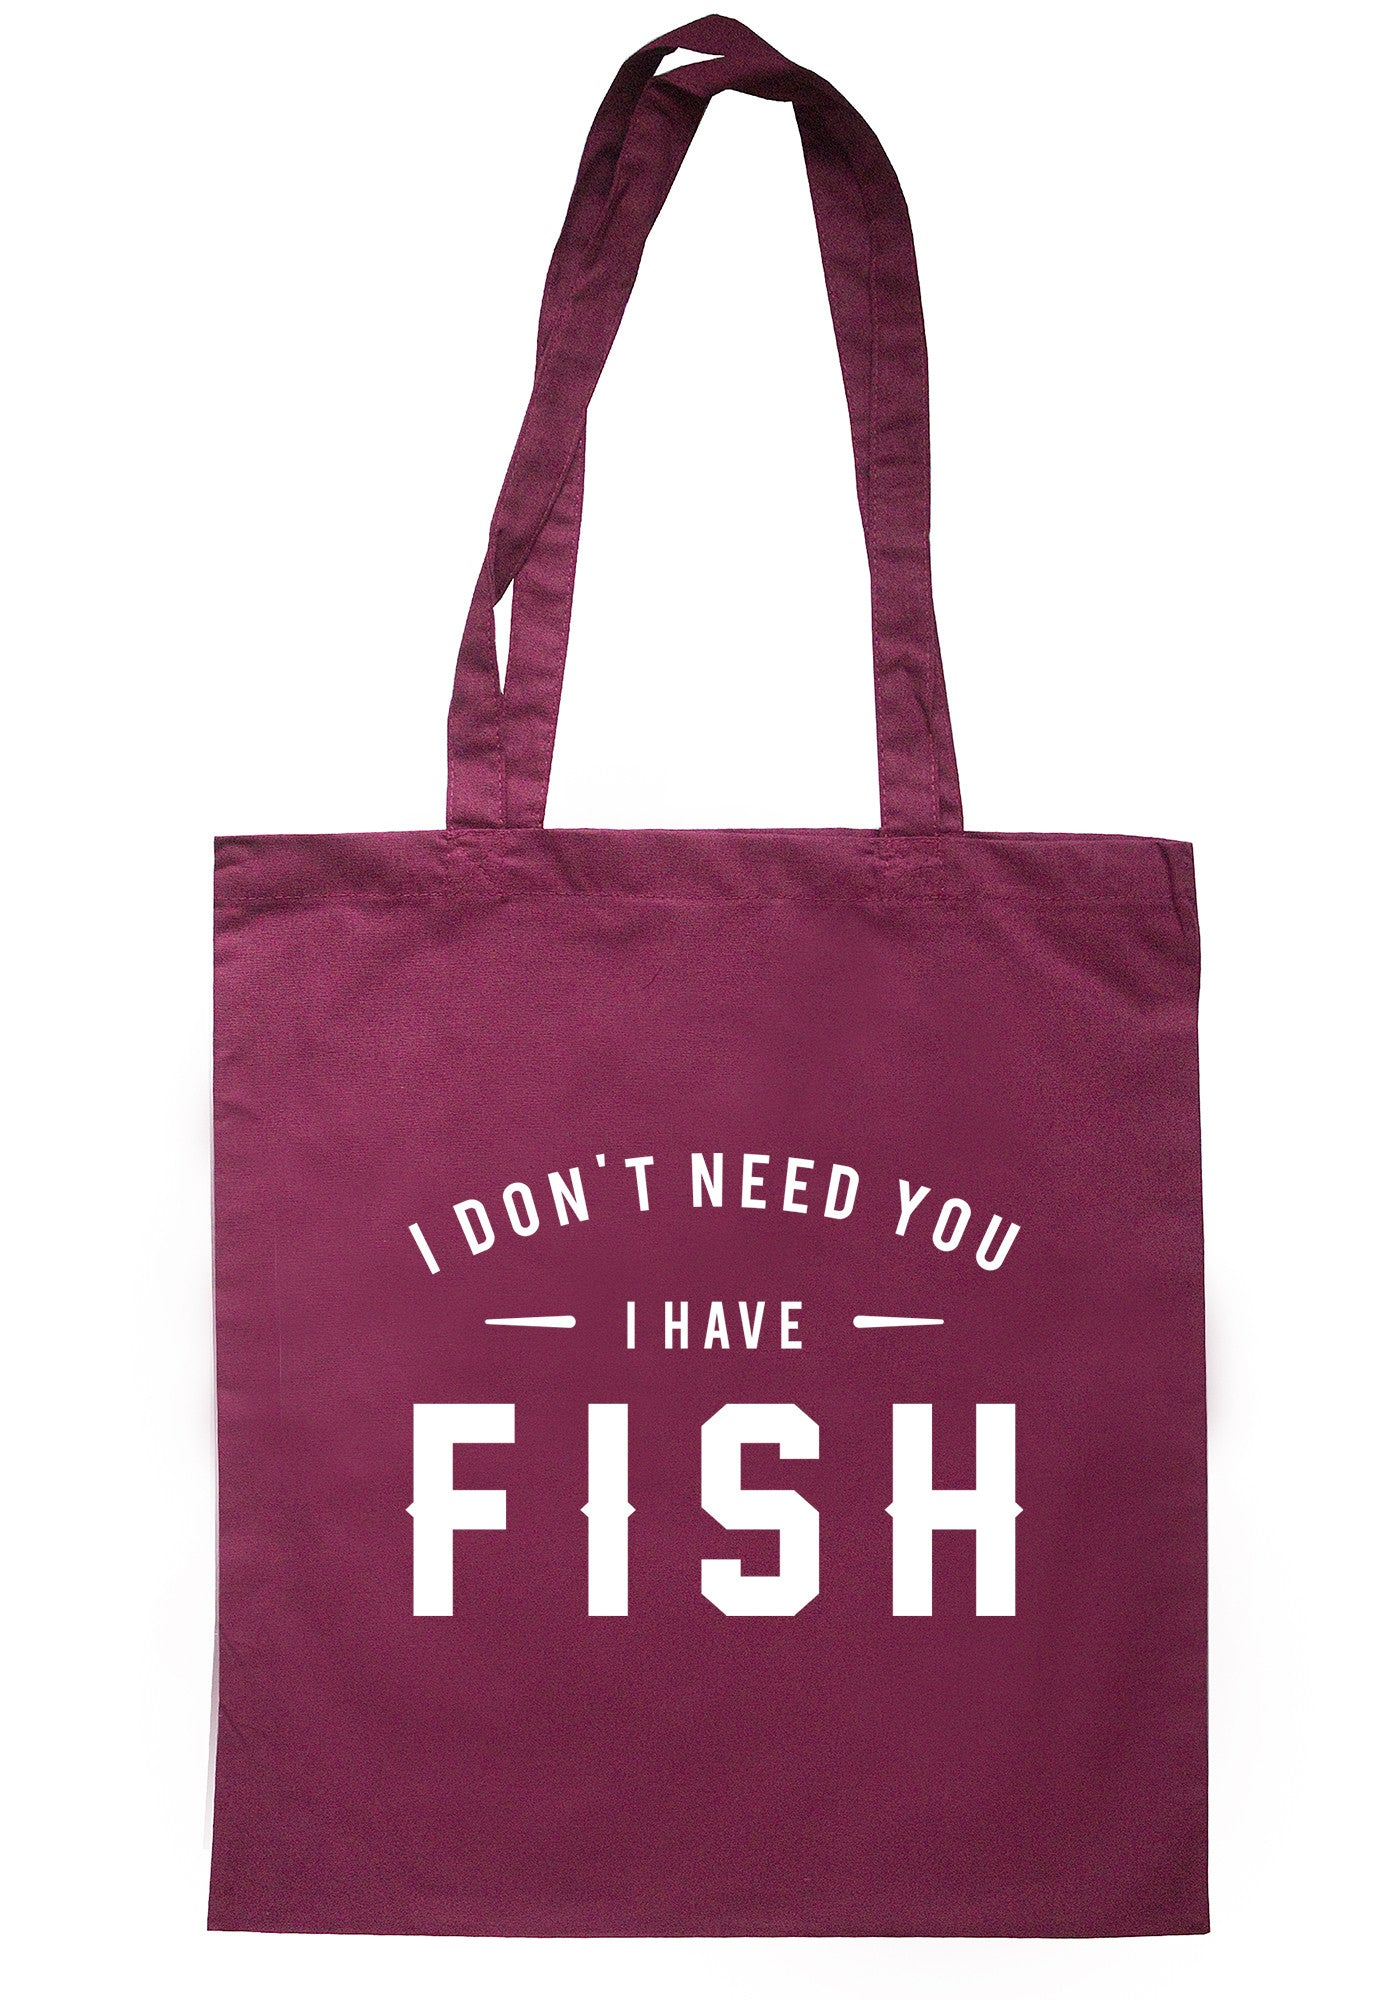 I Don't Need You I Have Fish Tote Bag TB0611 - Illustrated Identity Ltd.